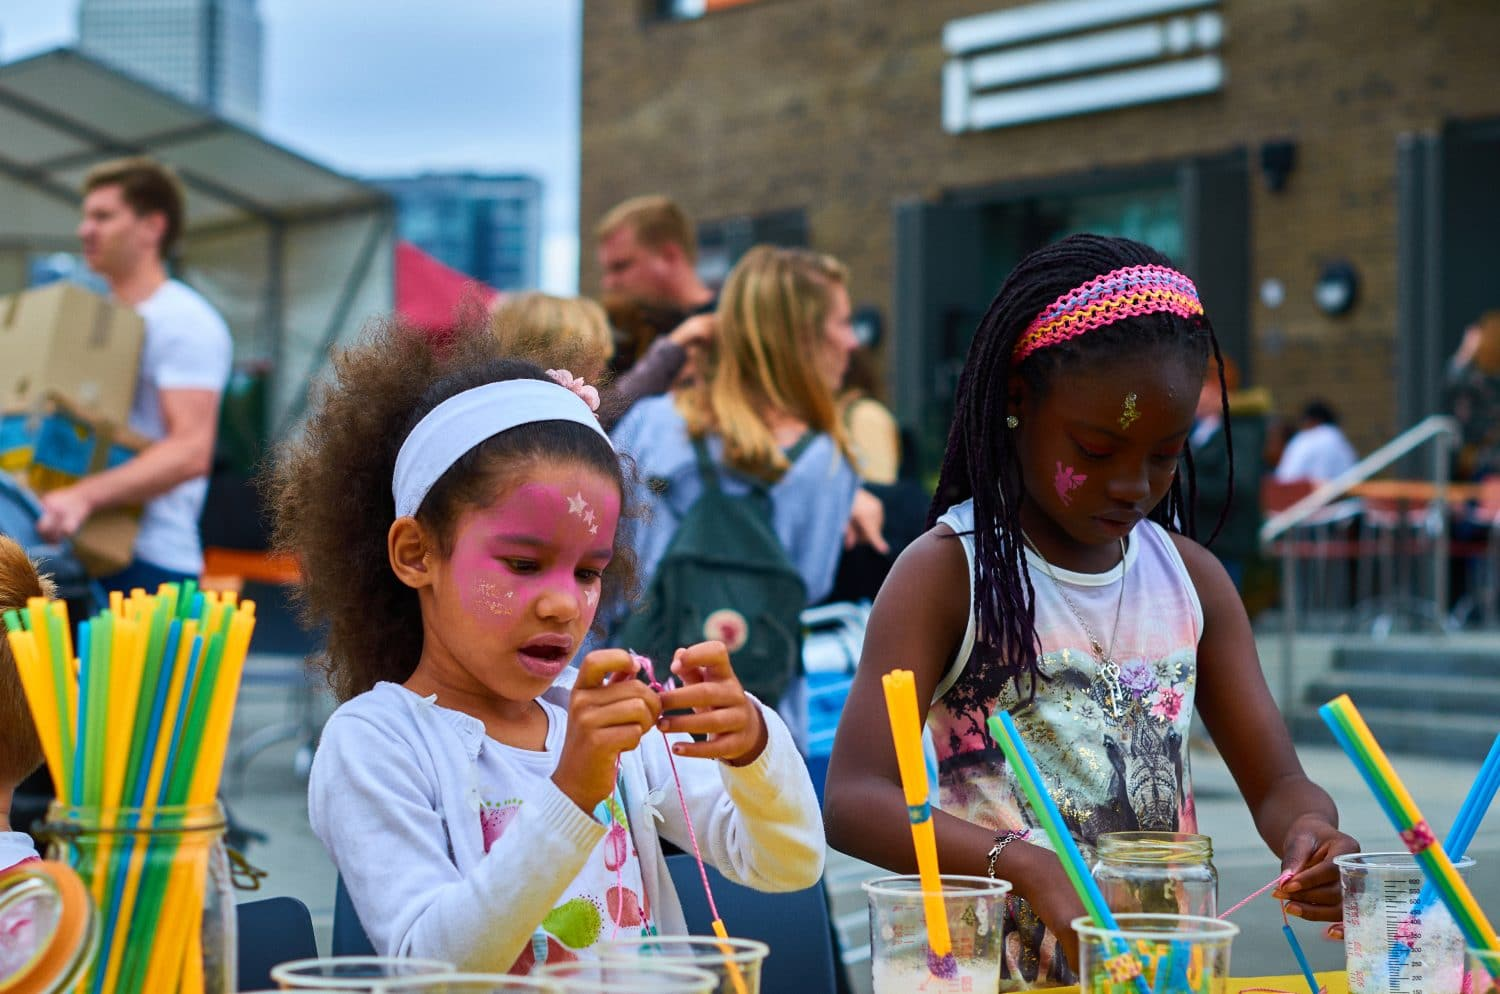 Poplar Union, Discover Poplar, Community street party, arts and crafts, east London, kids and family, art centre